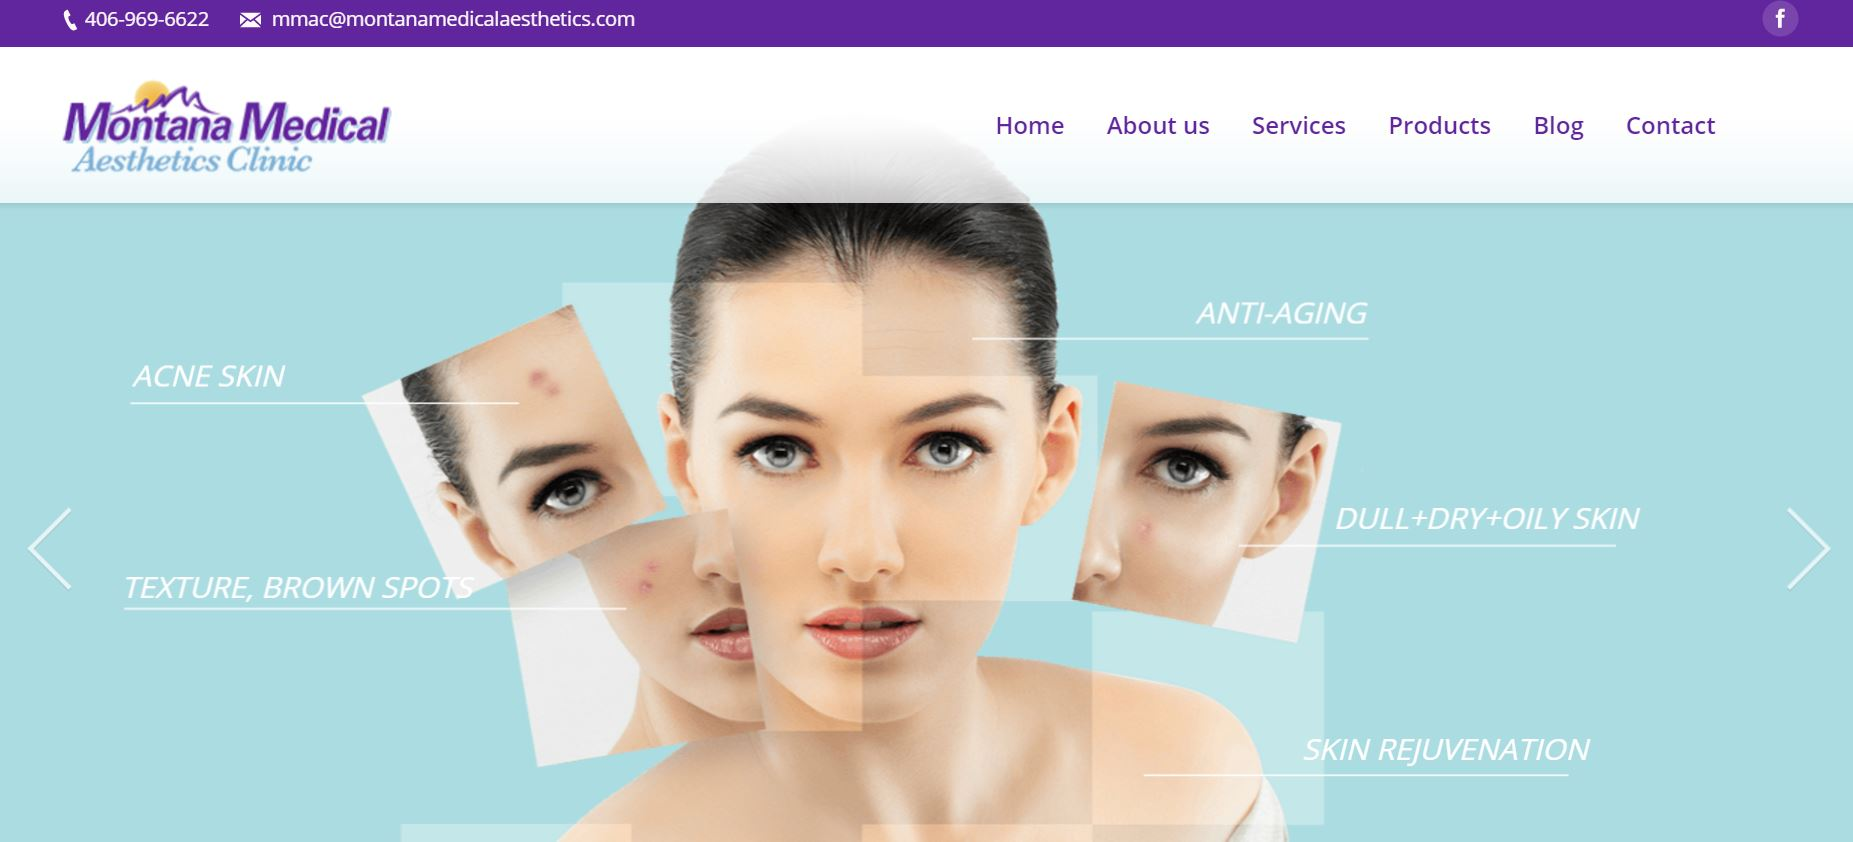 Montana Medical Aesthetics Clinic Website